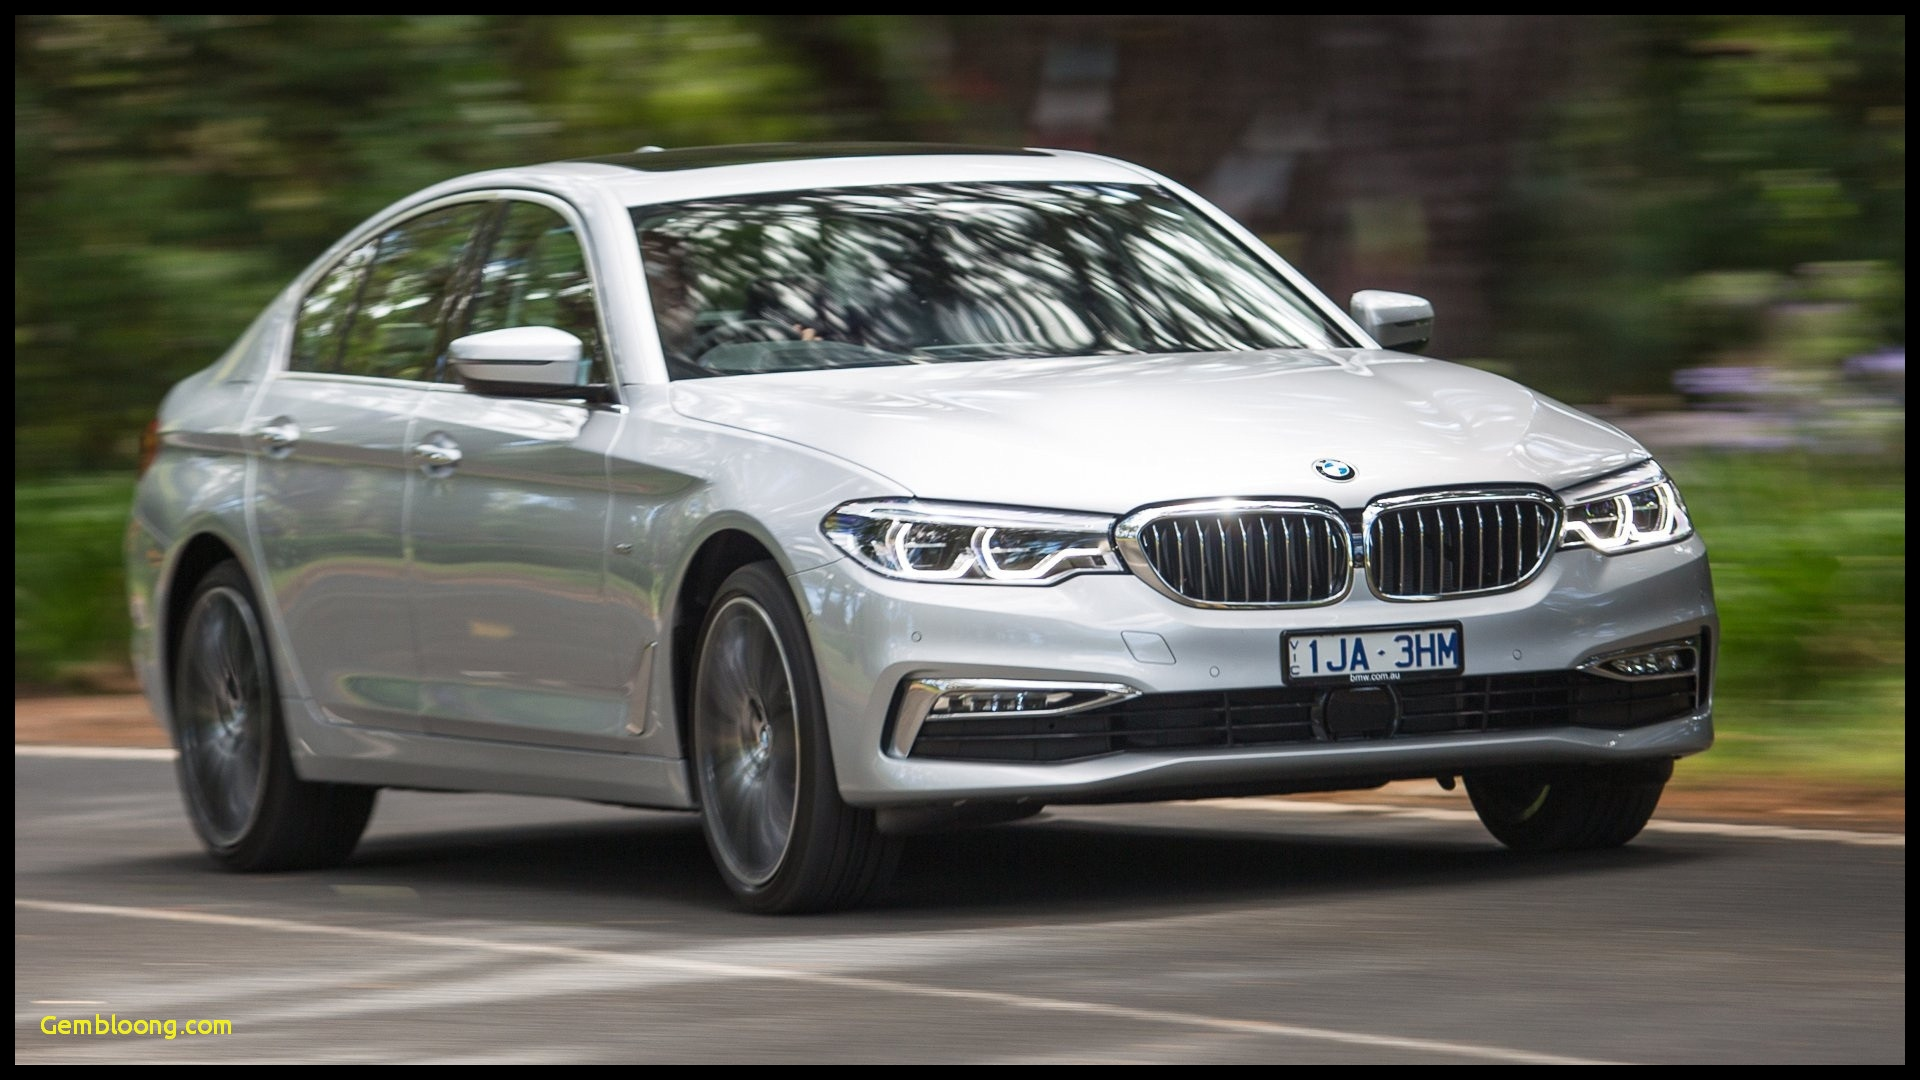 Bmw 2018 M3 Overview and Price Bmw M3 2019 2019 Bmw 5 Series Bmw 5 Series